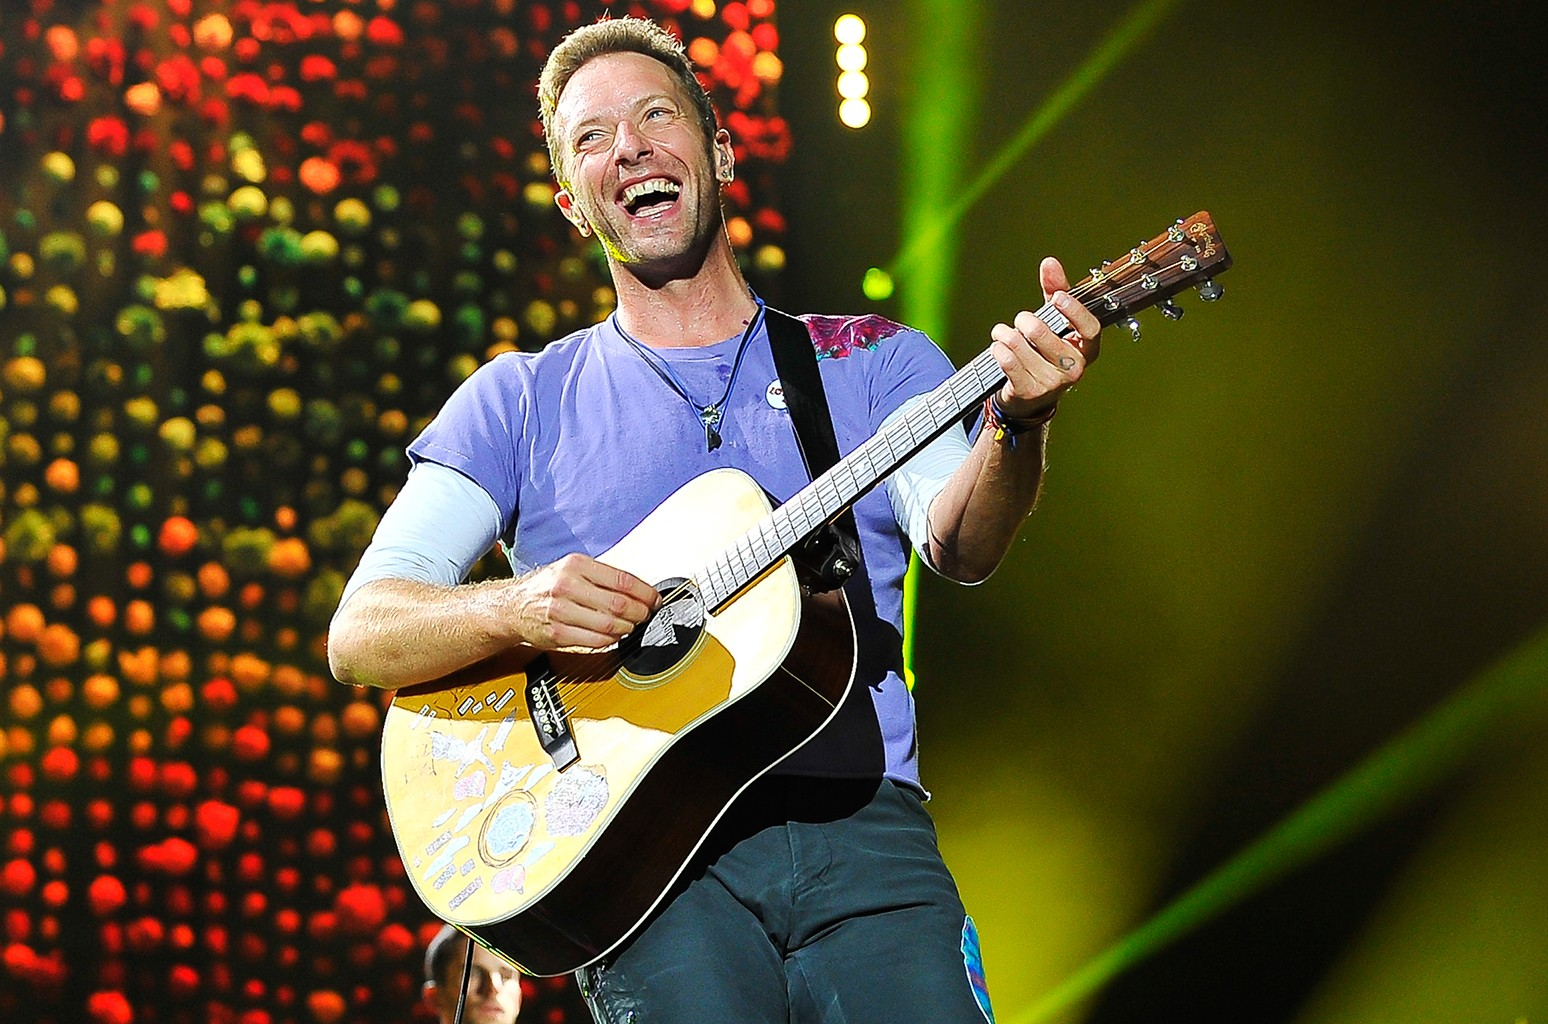 Chris Martin of Coldplay, 2017